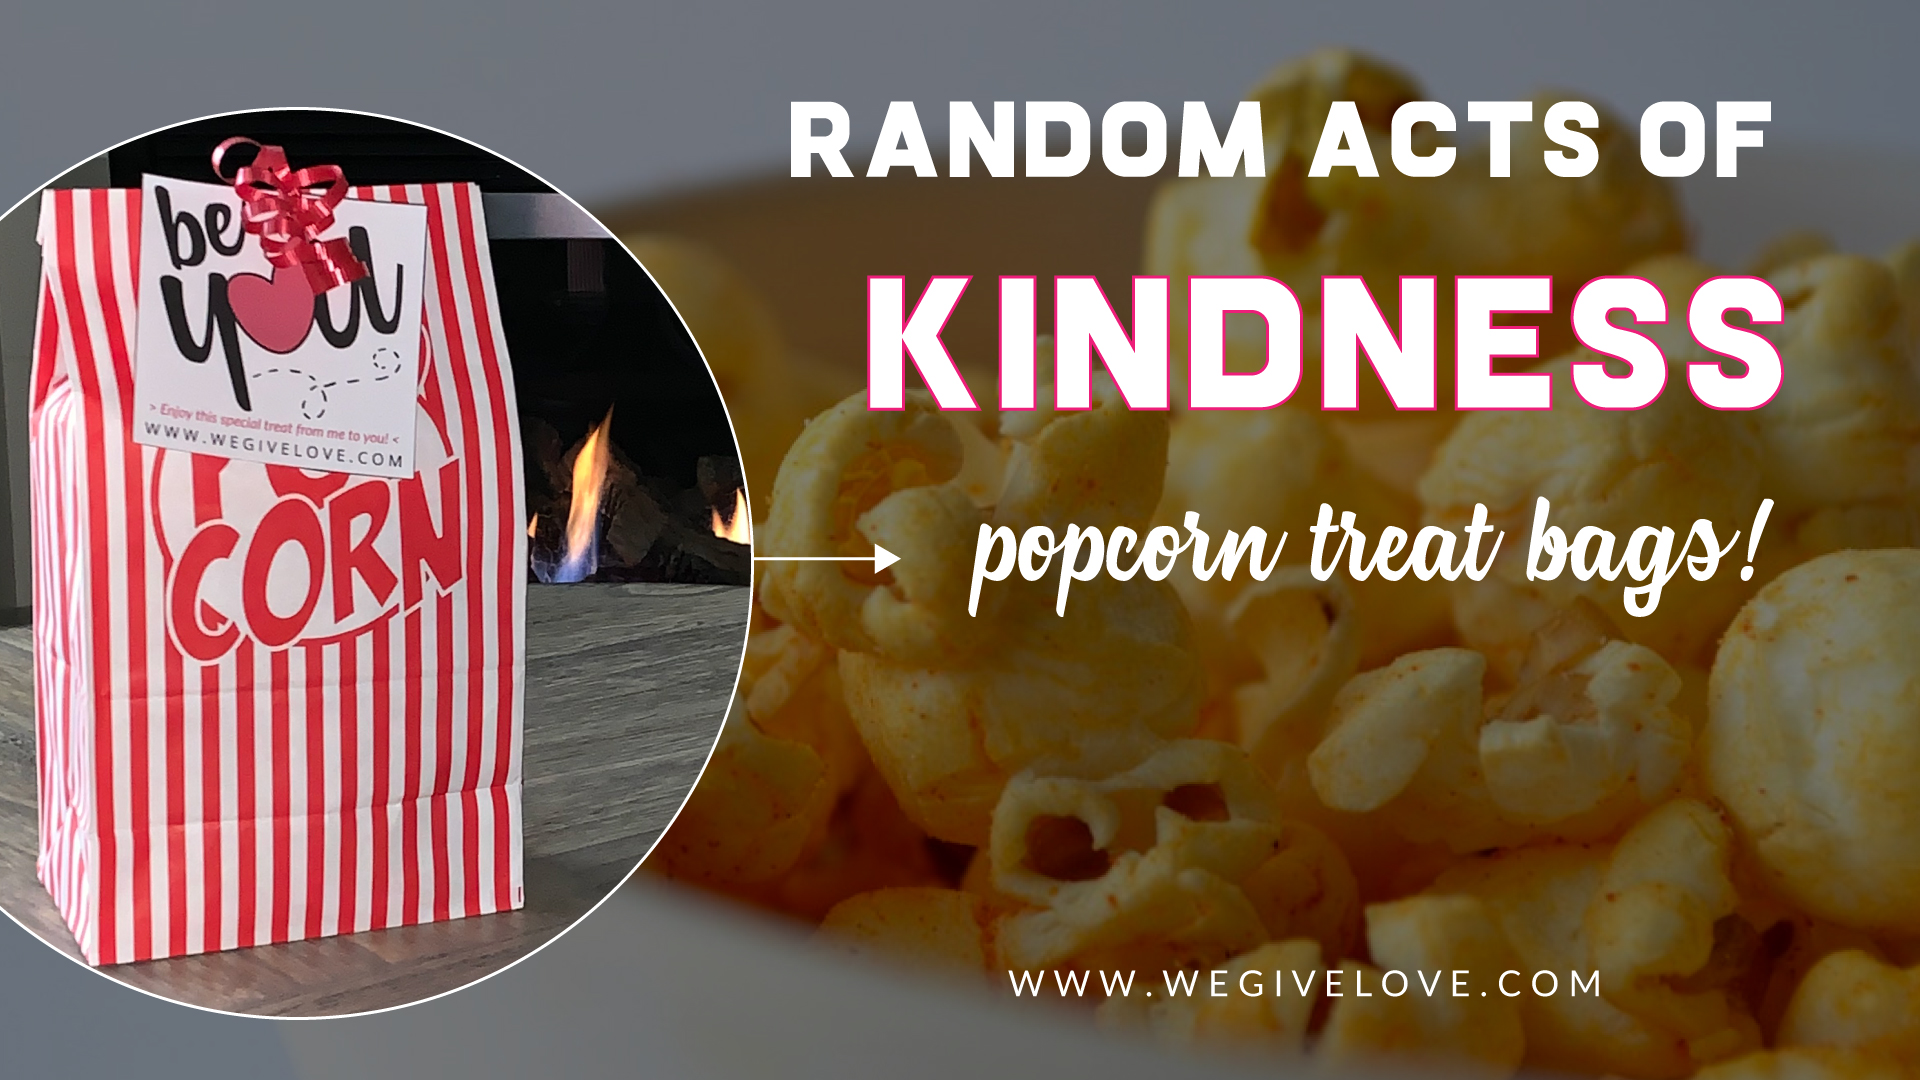 random acts of kindness popcorn treat bags | wegivelove.com